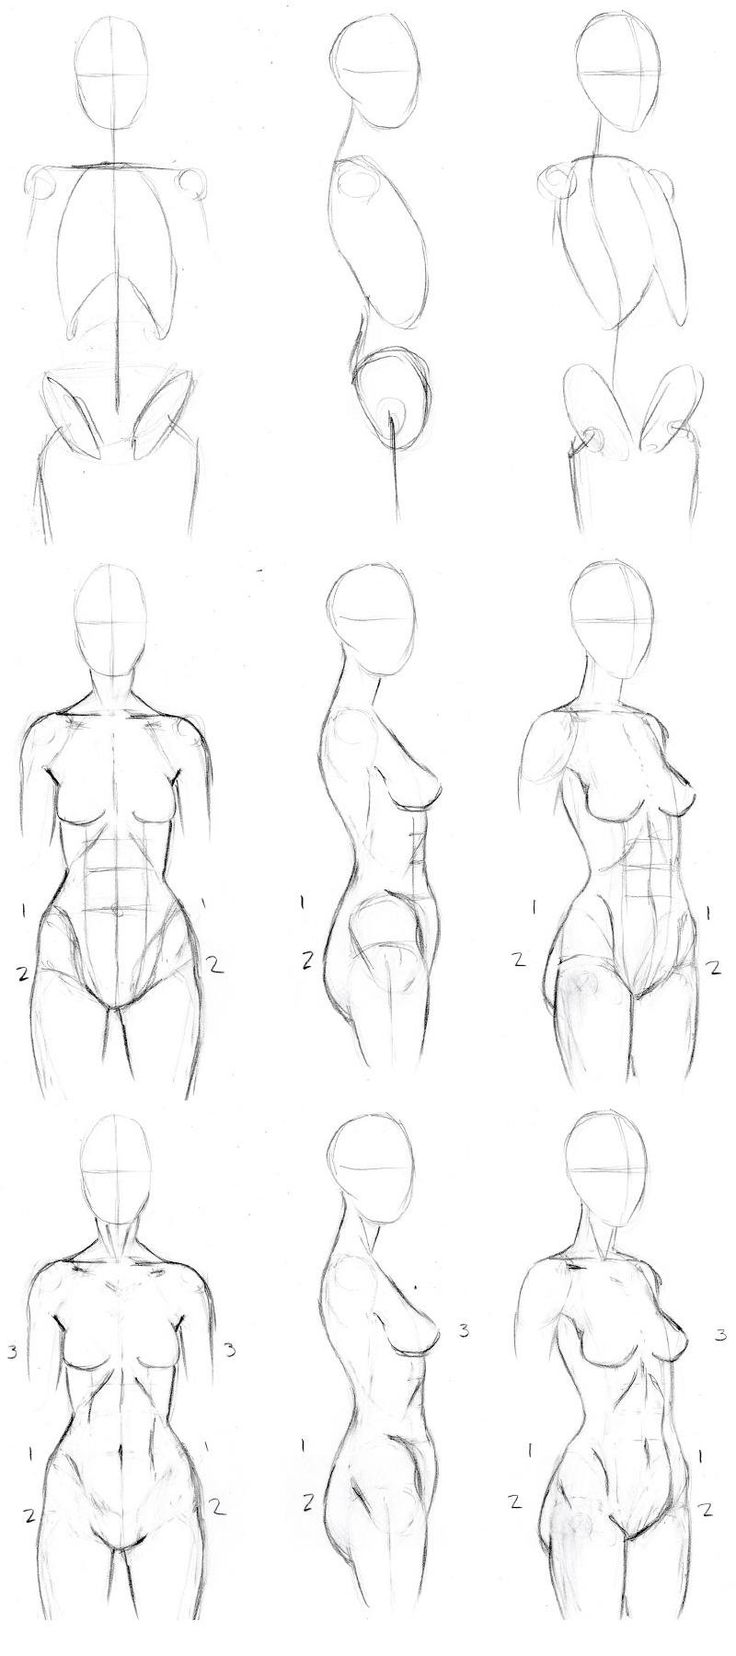 I know I said that i'd do the Male anatomy next, but this one came up and I decided to do it. I am still working on the male. The notes are there, I just need to draw it out. Let me know if you hav...